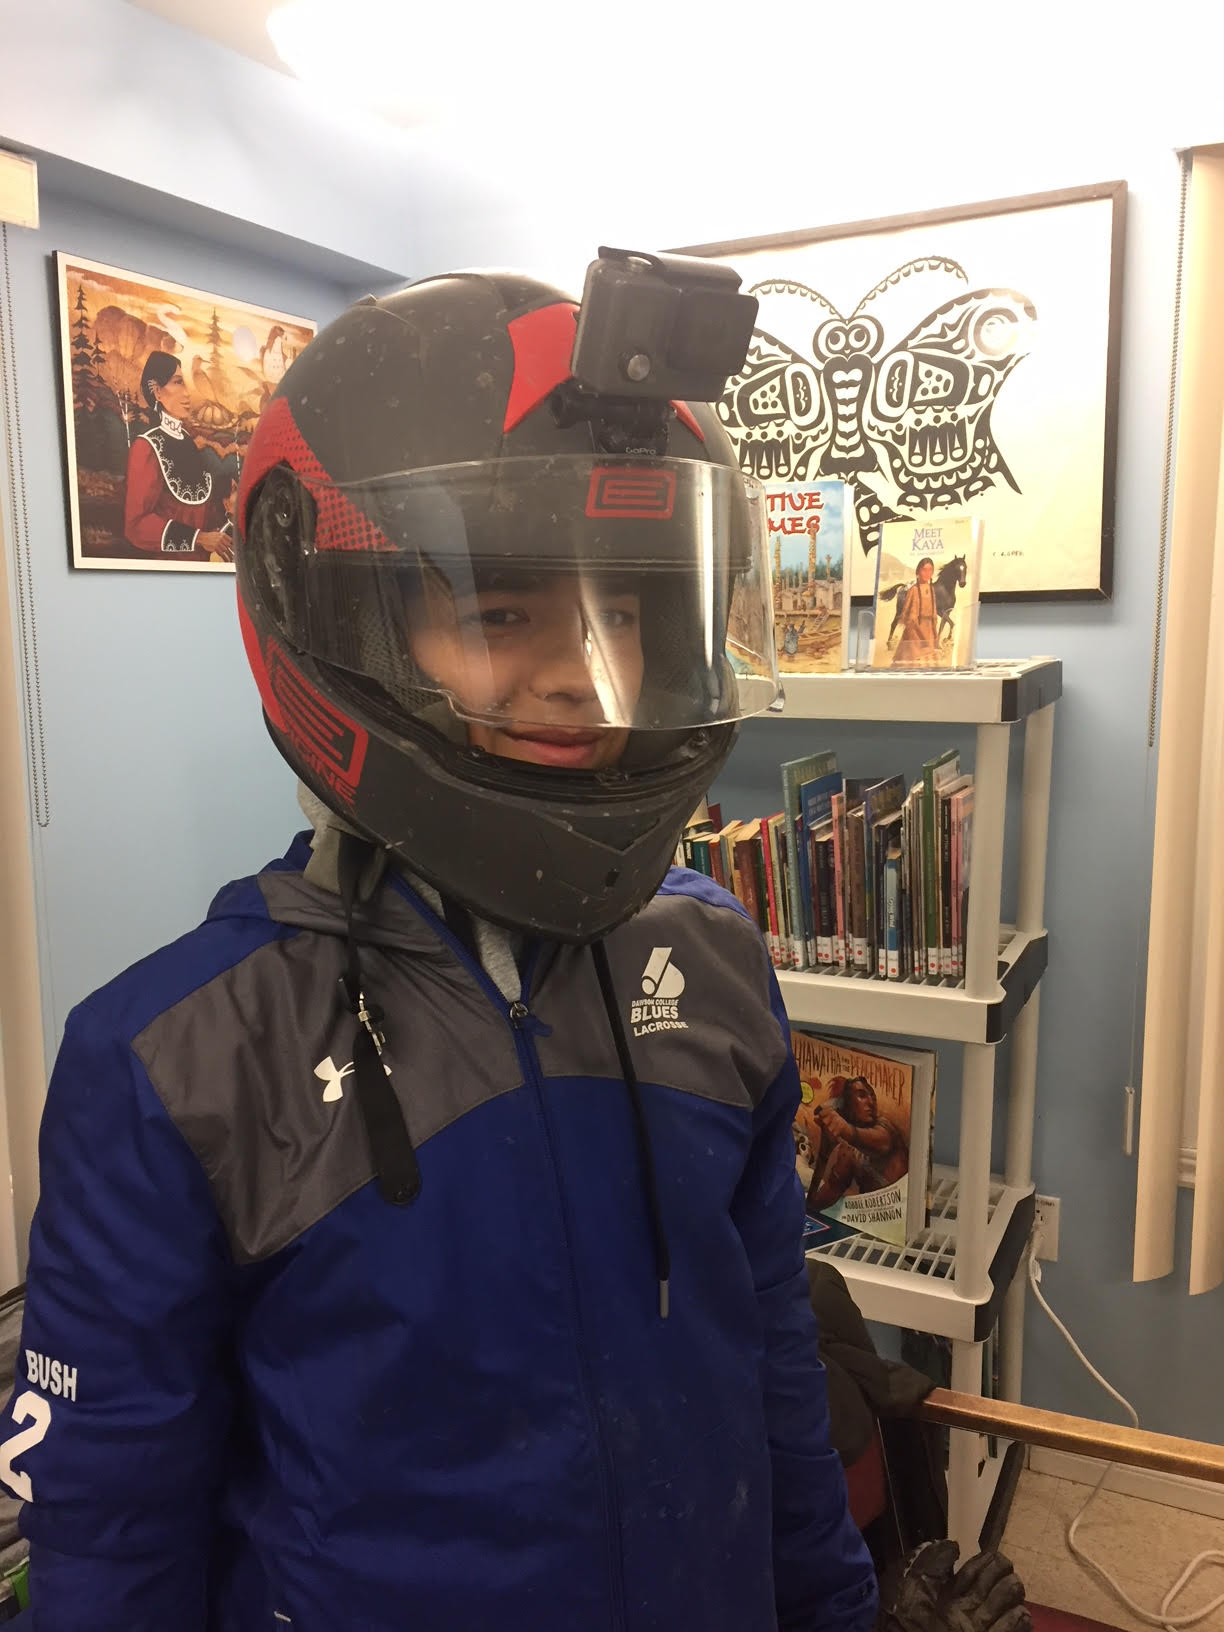 Kanerahtens, with his GOPRO on his helmet, is ready to film night footage.